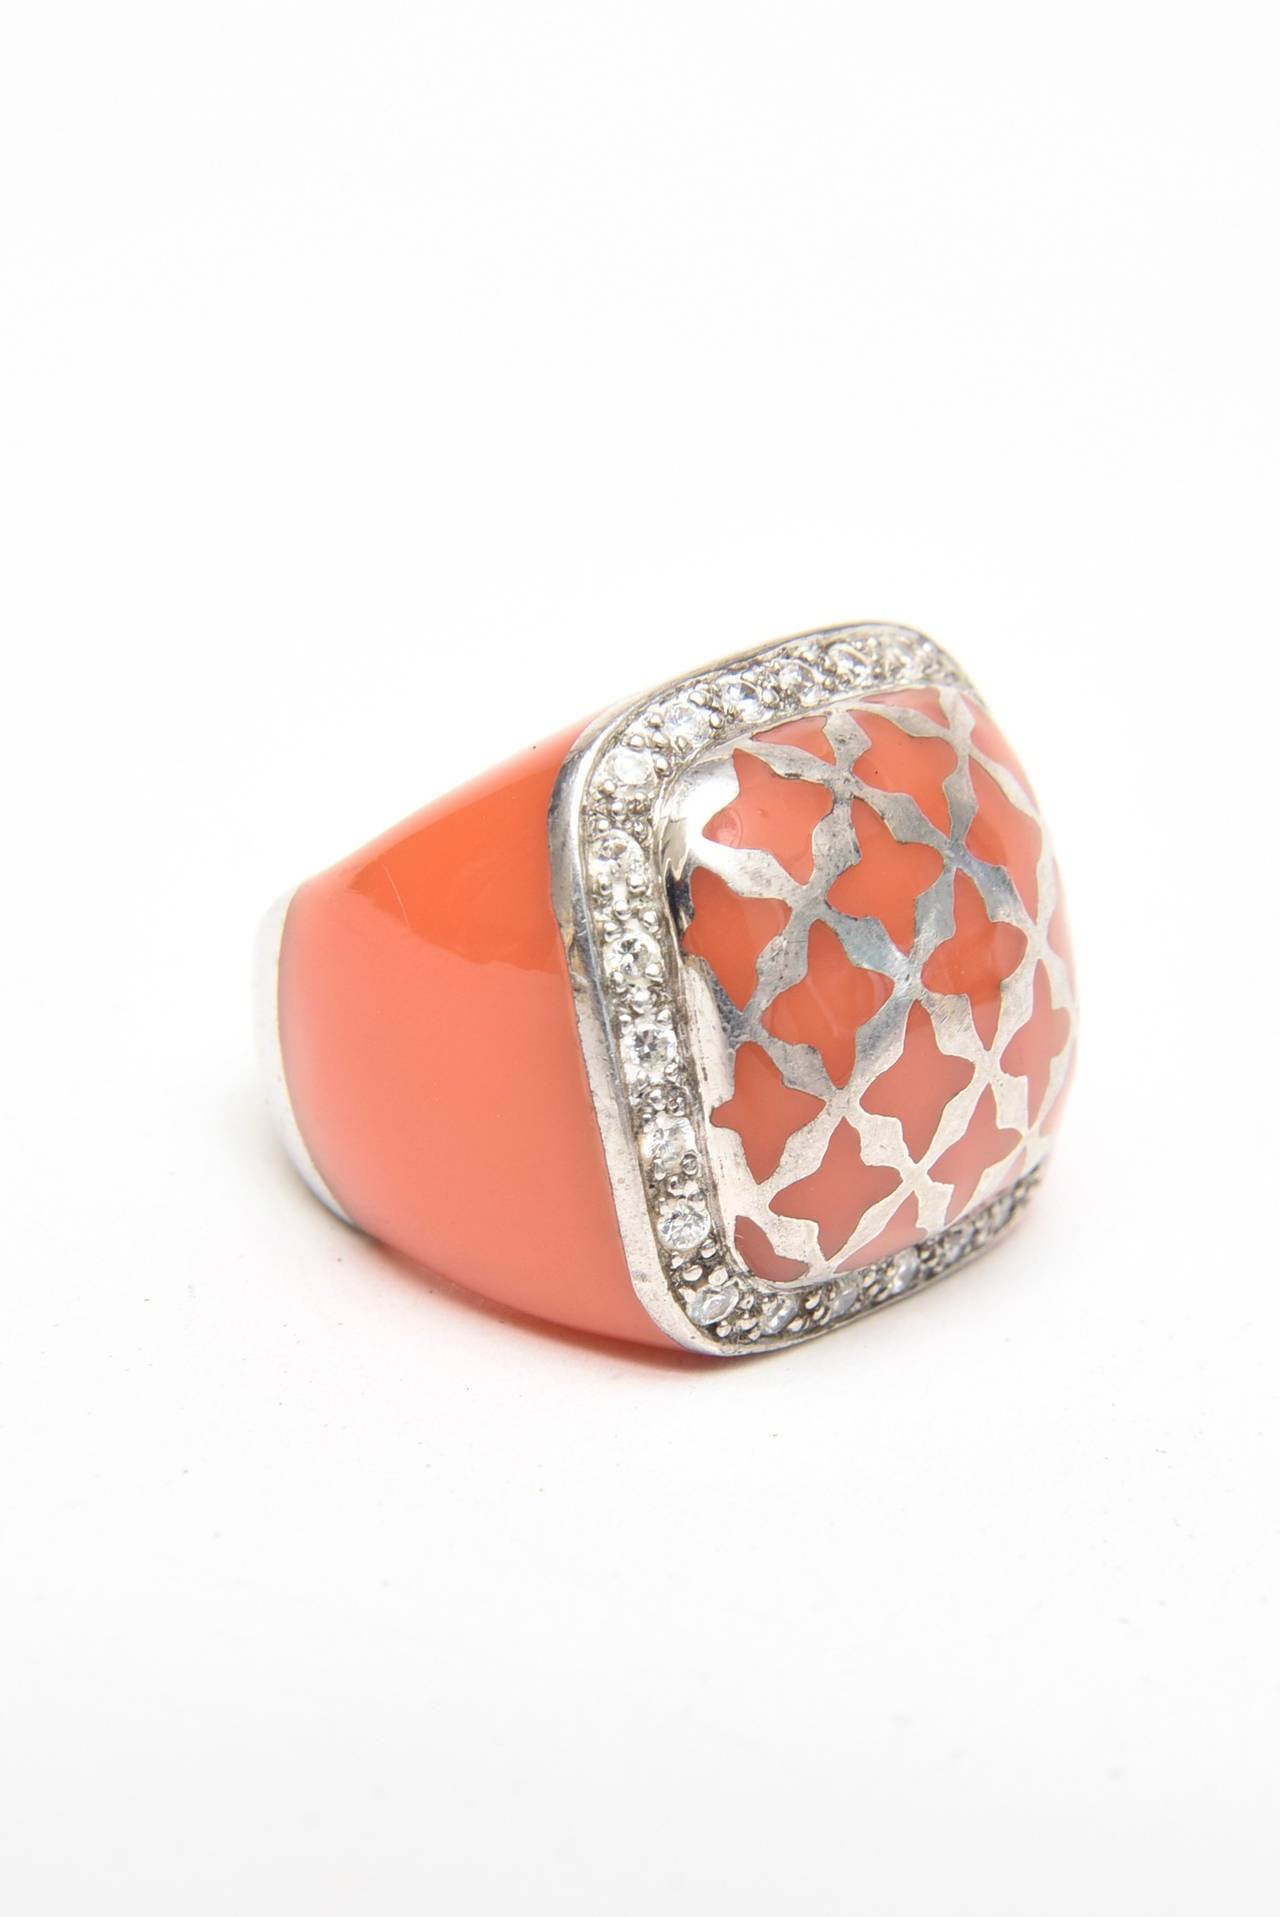 Angelique de Paris Sterling Silver, Rhinestone & Resin Dome Ring For Sale 2